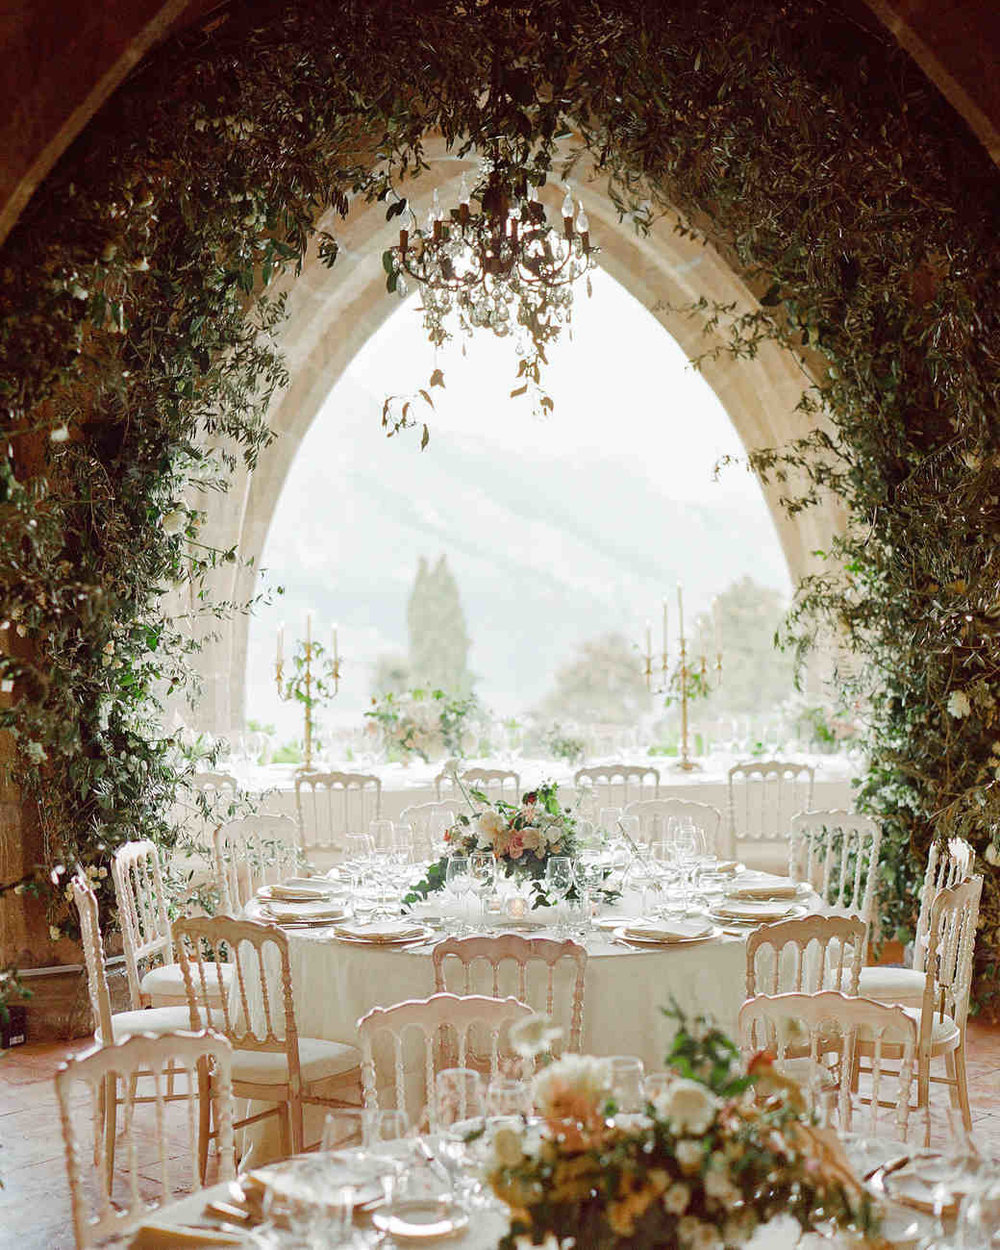 lisa-greg-italy-wedding-reception-table-103312986_vert.jpg